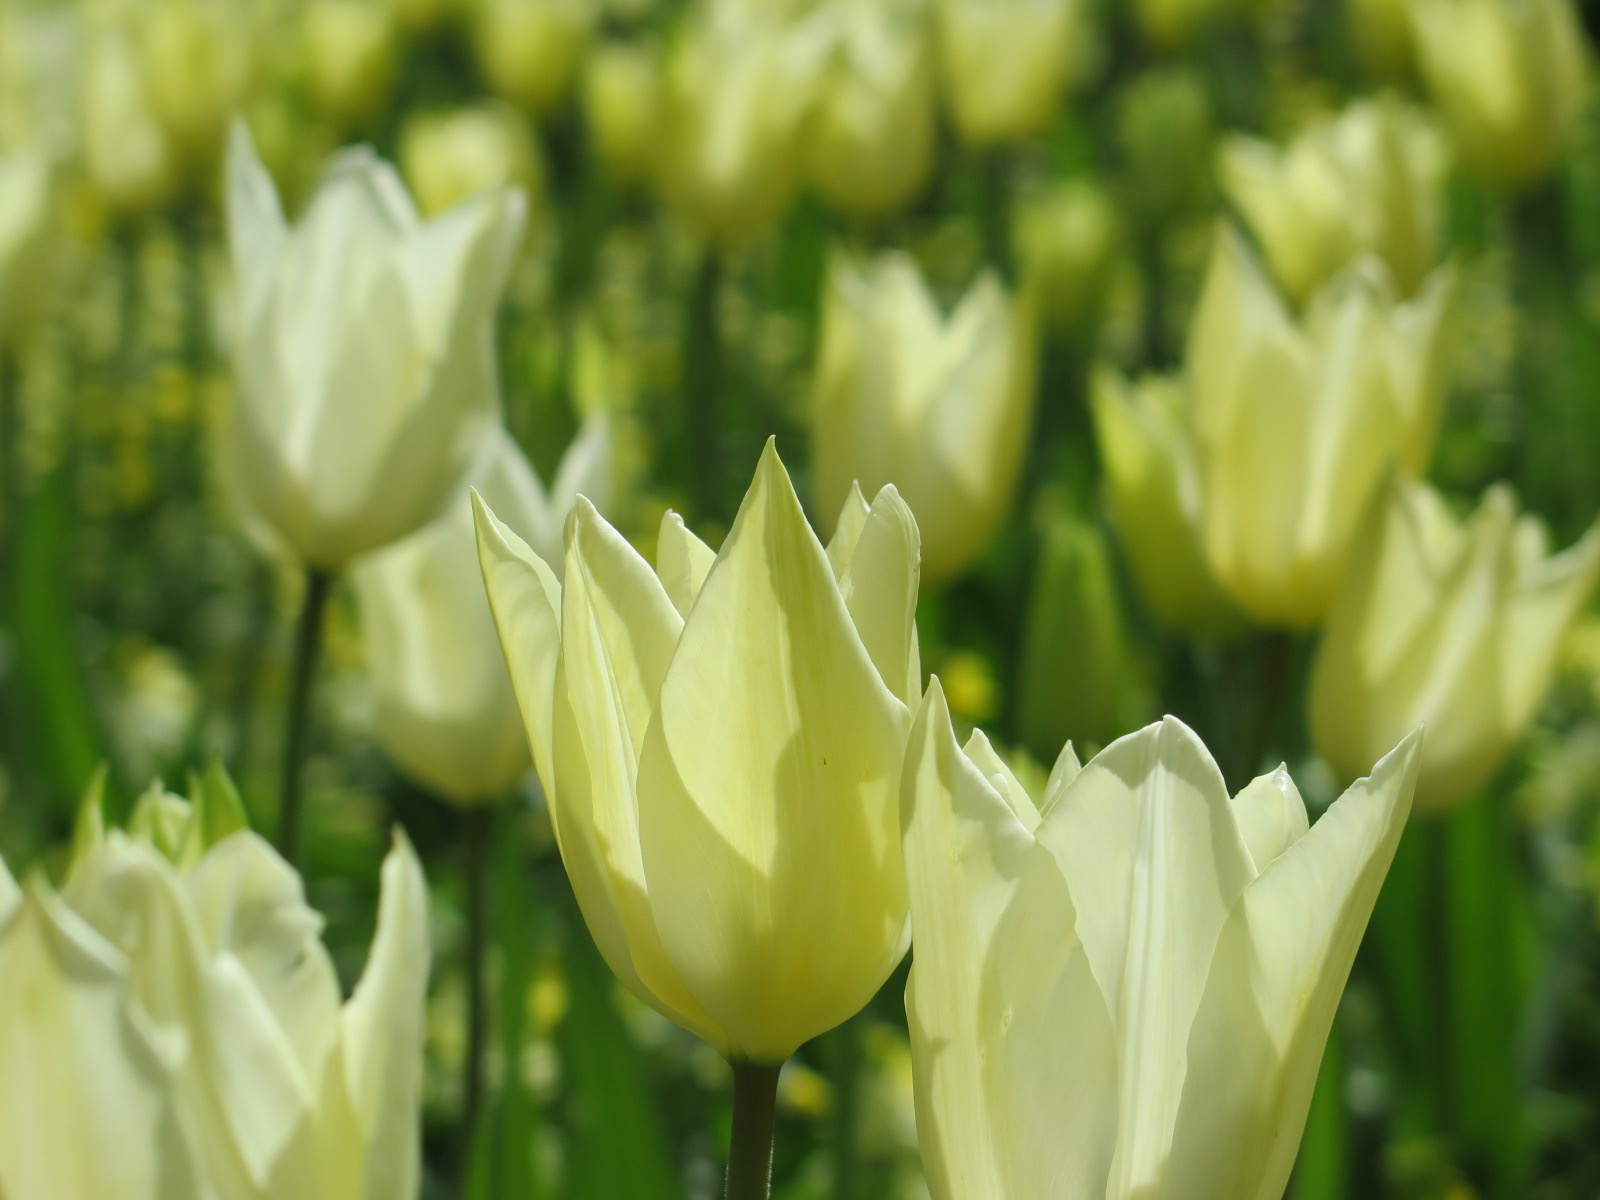 Tulips in the White Gardens -16/17